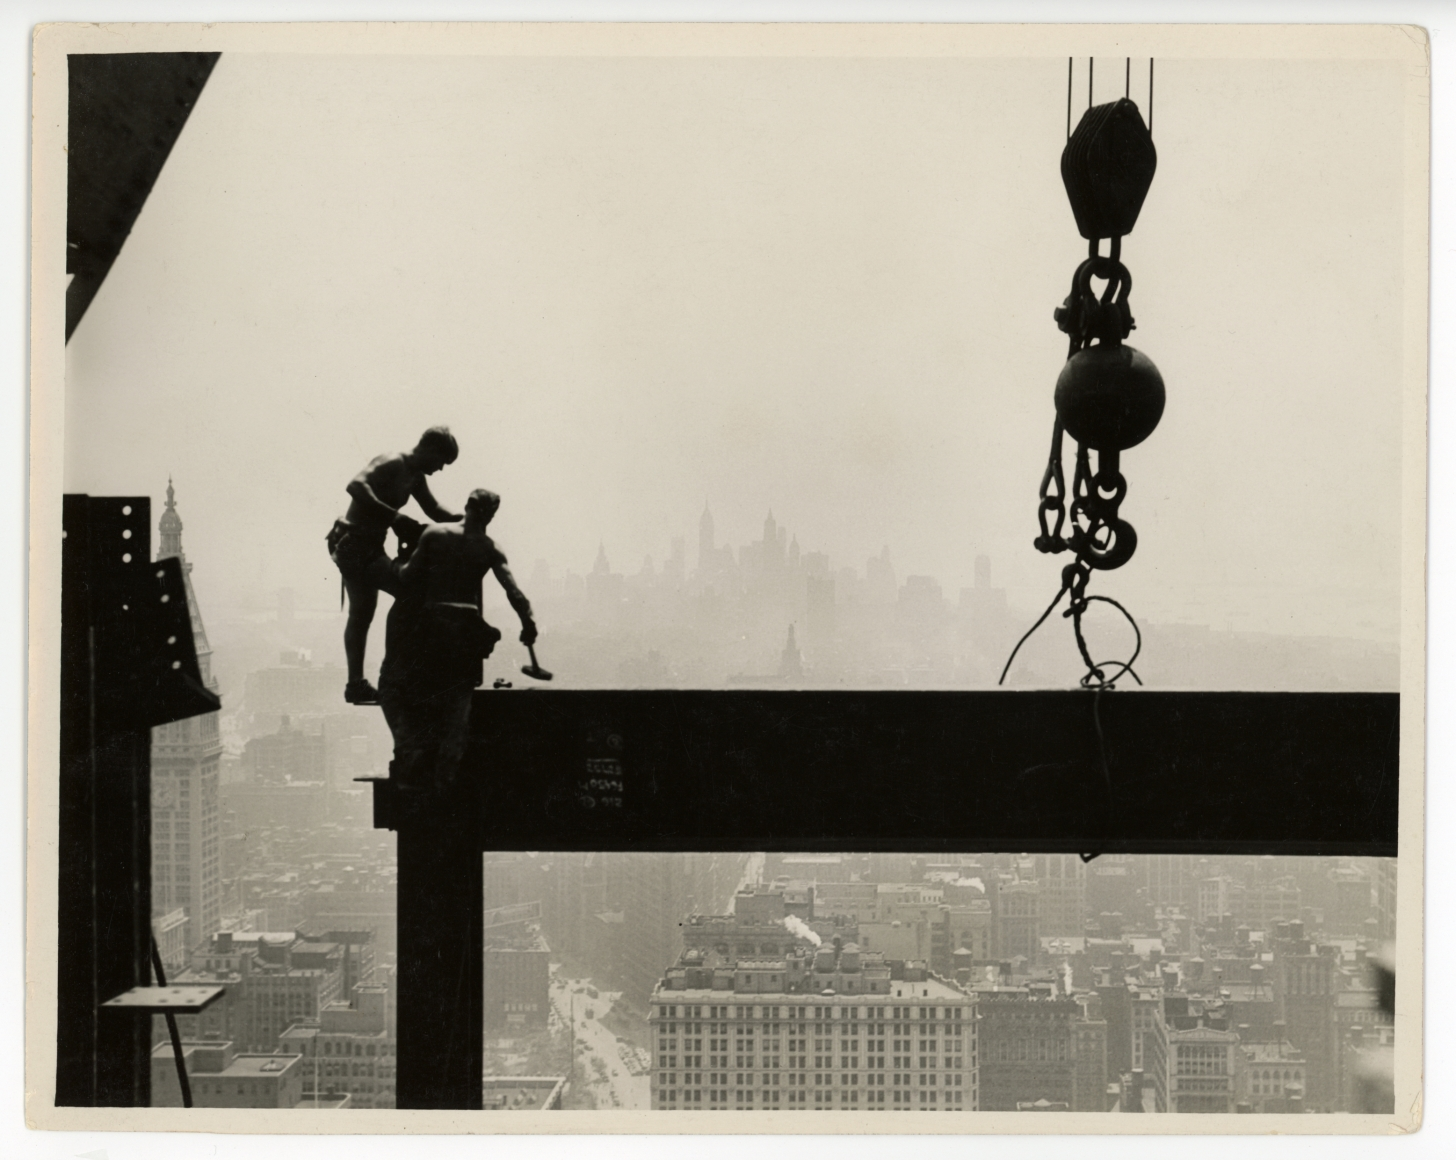 Lewis Hine, Connecting Beams on Skyscraper, 1932